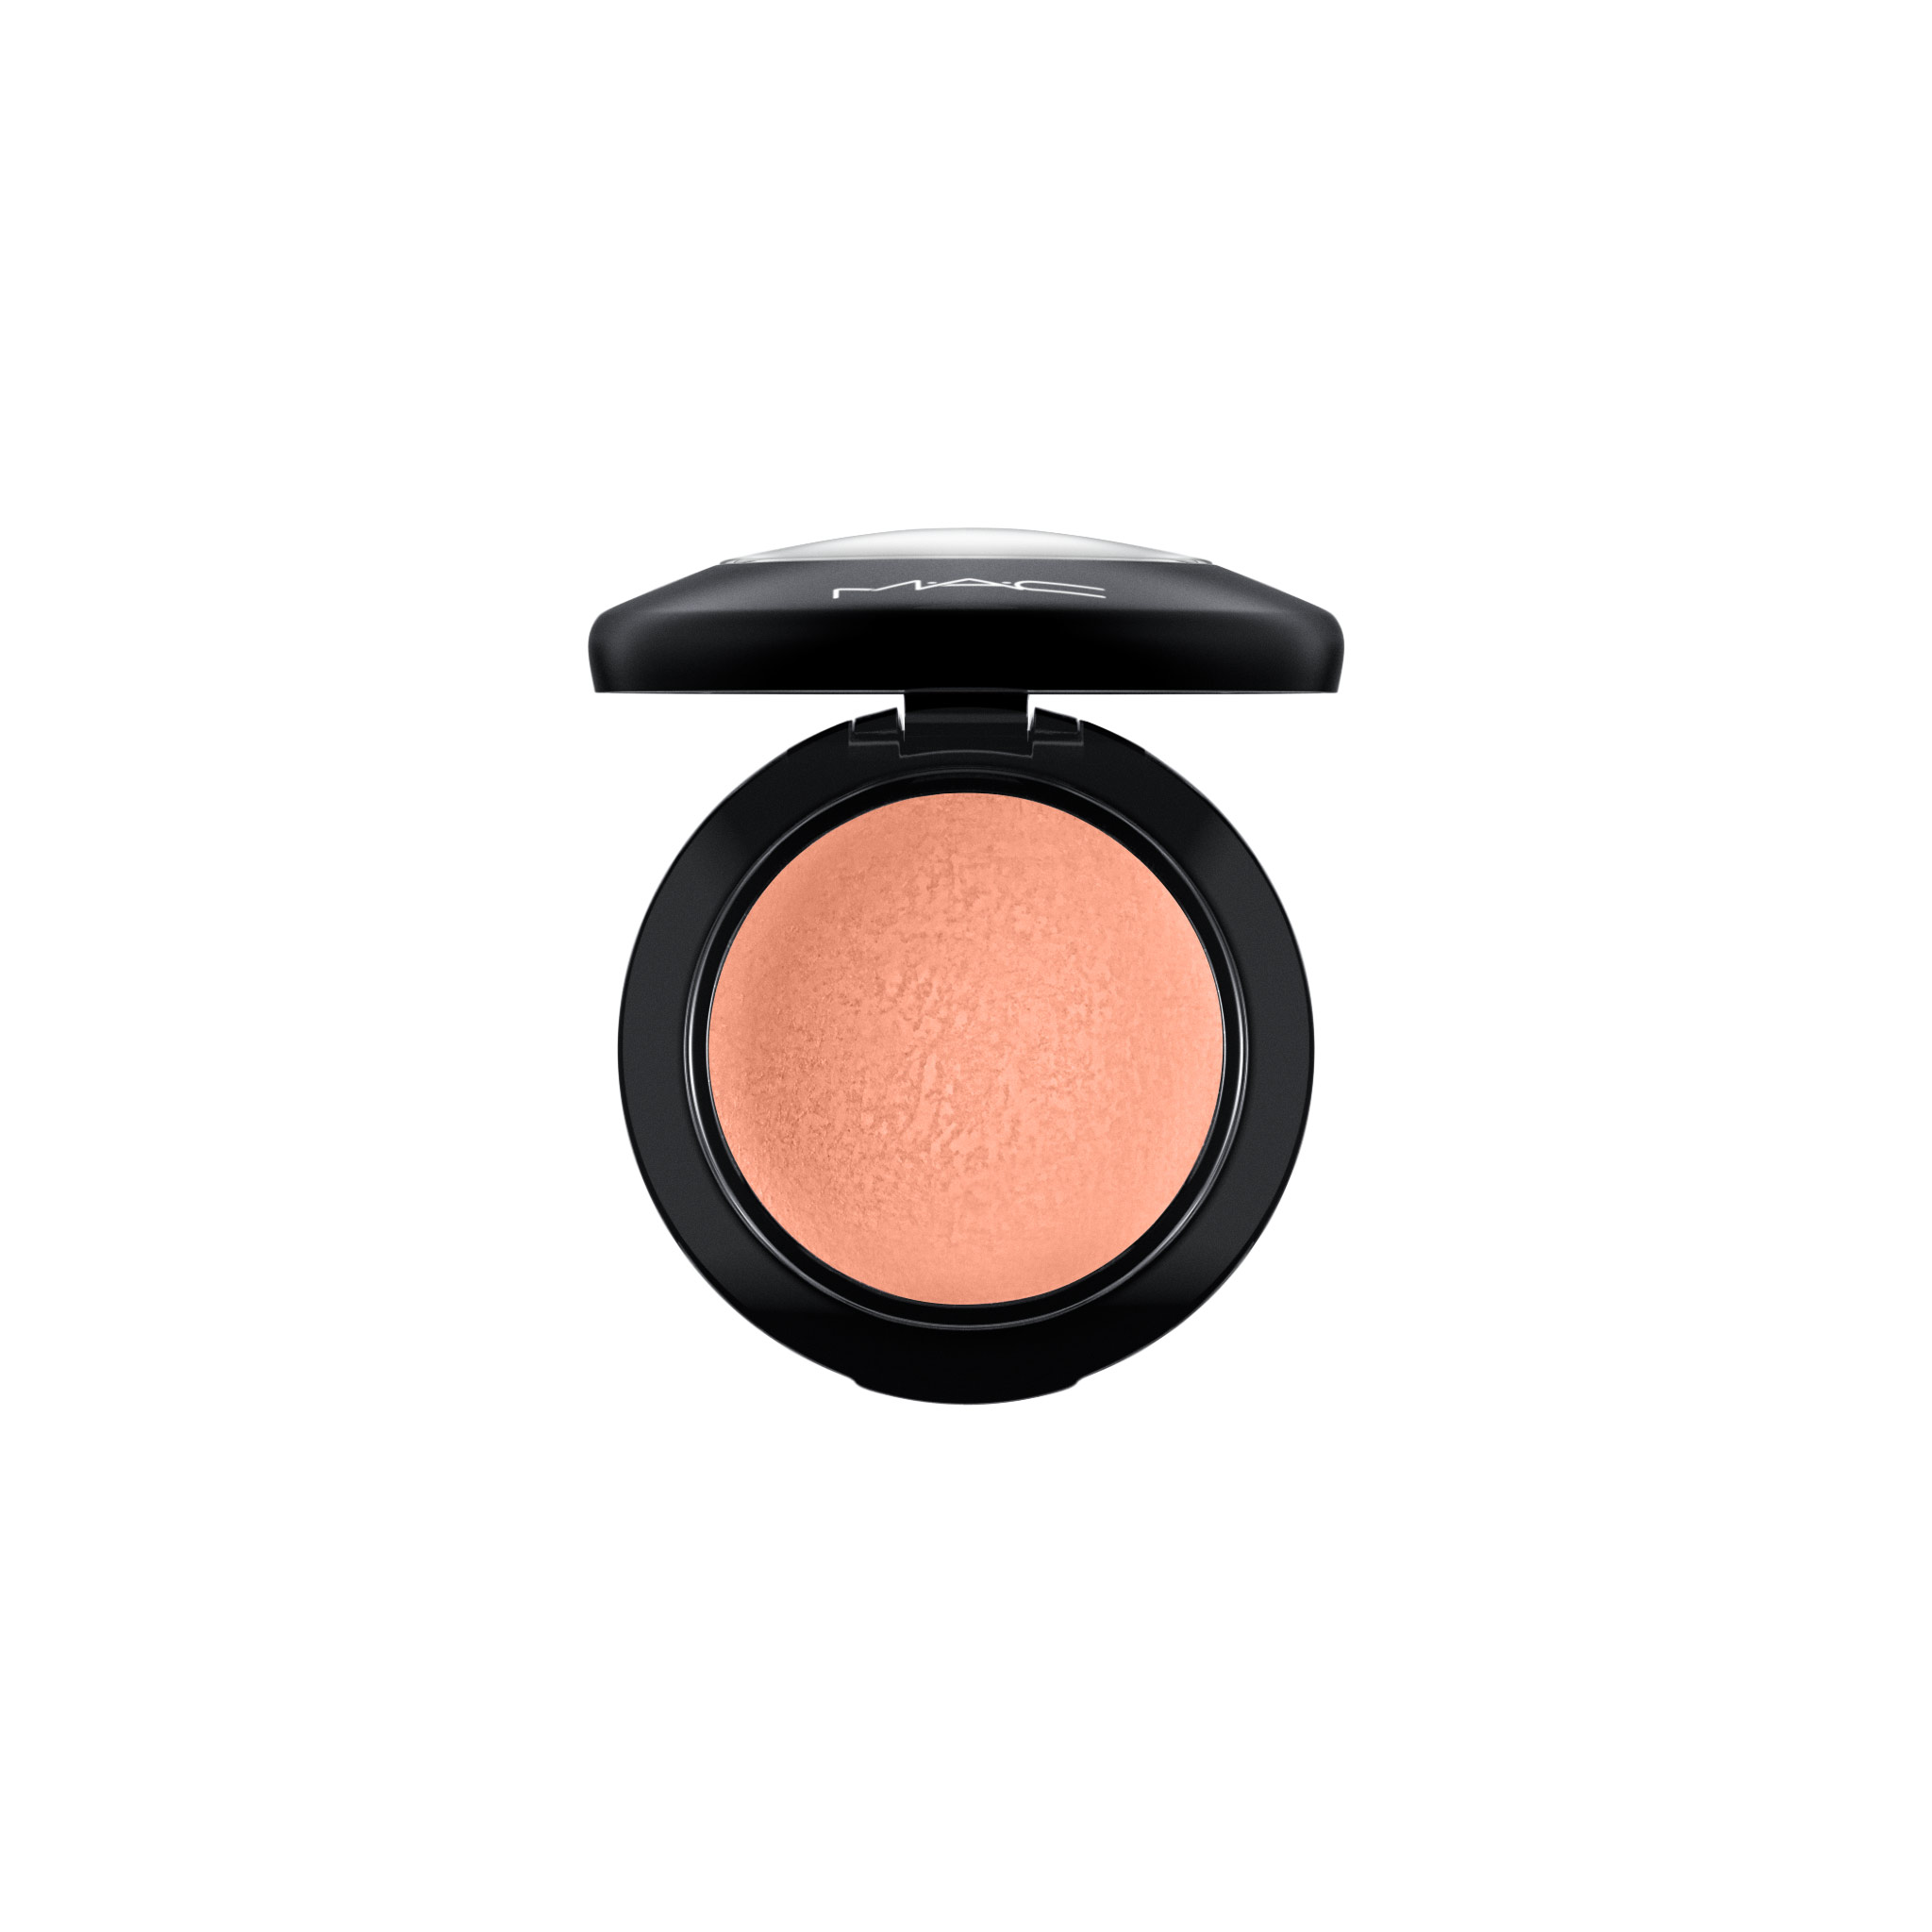 An image of MAC Mineralize Blush 3.5g Group 2 - NATURALLY FLAWLESS